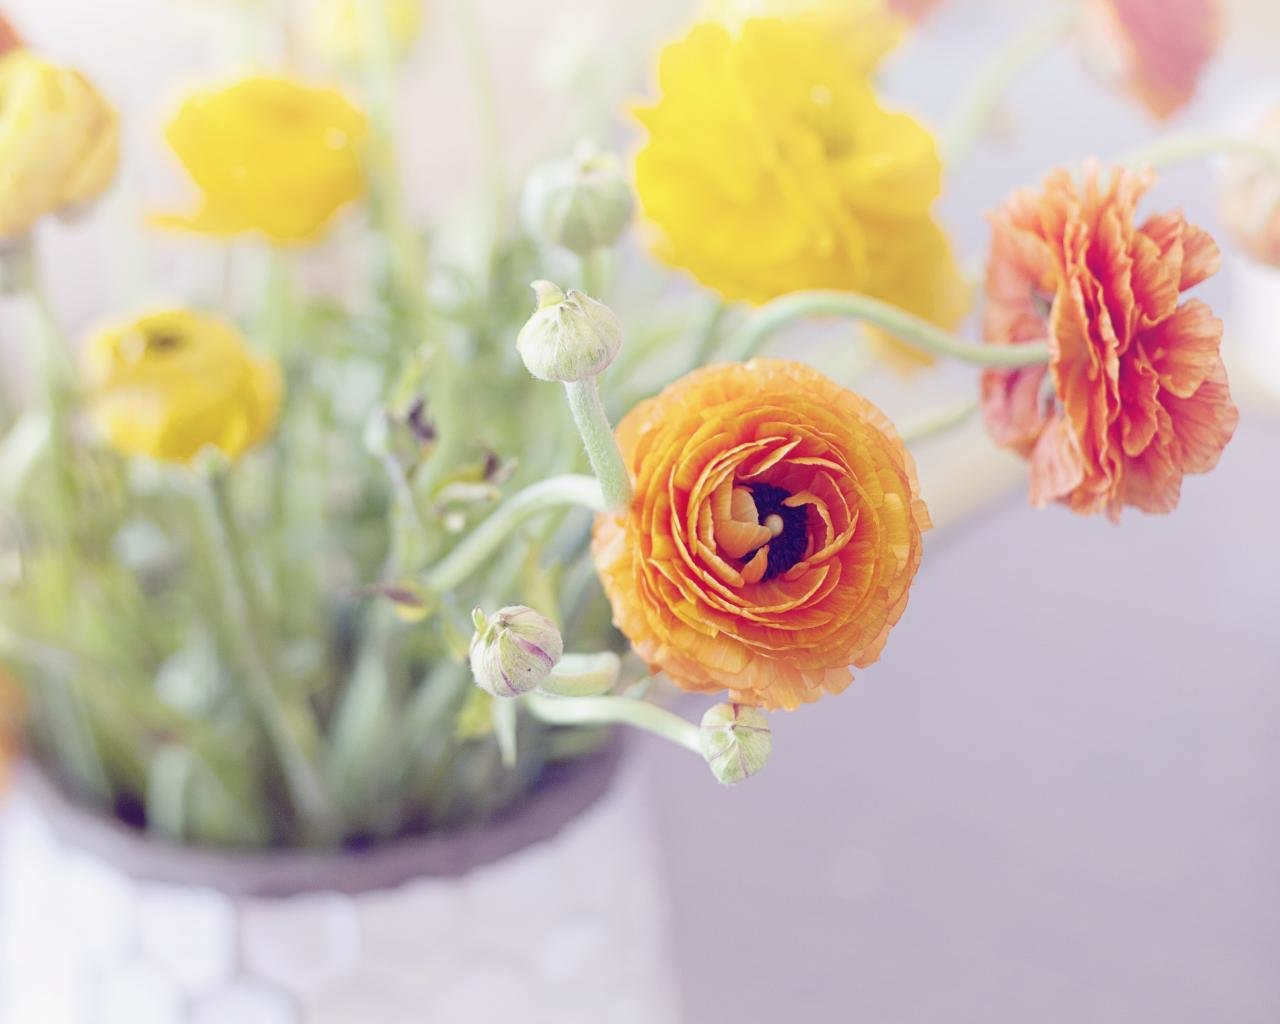 Awesome flower bouquet flowers healthy awesome flower bouquet free background id 179854 for hd 1280x1024 puter izmirmasajfo